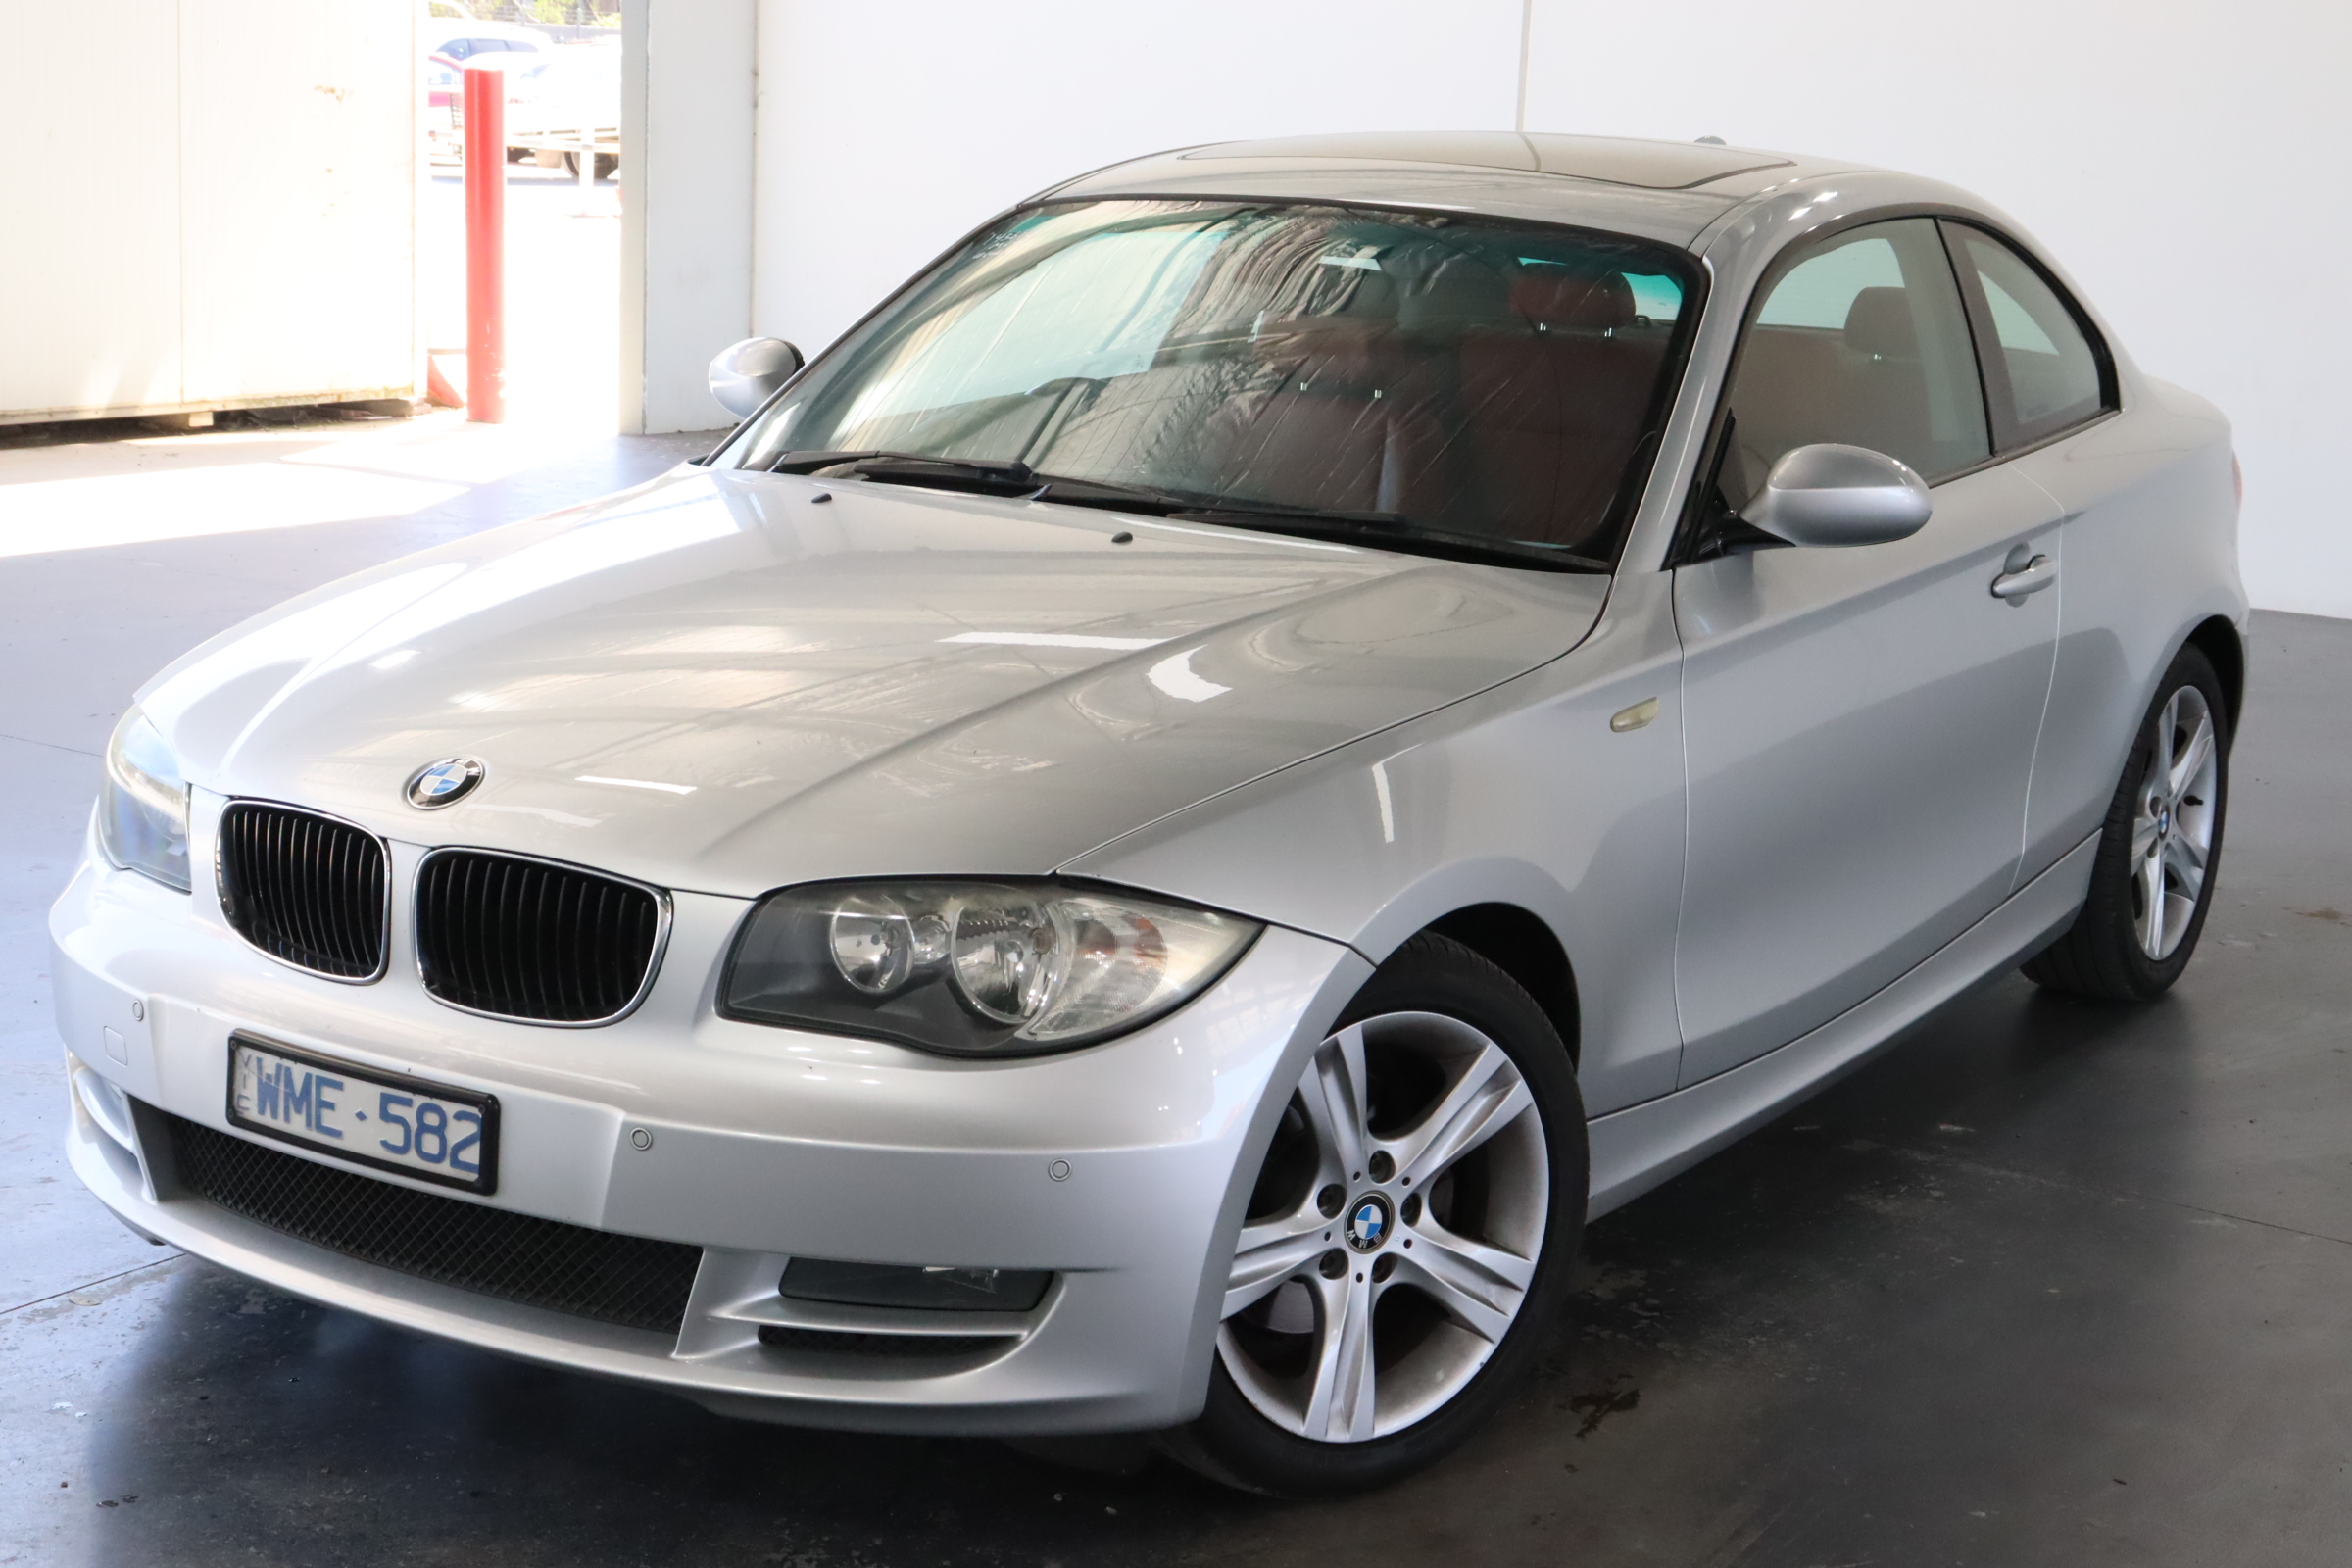 2008 BMW 1 25i E82 Automatic Coupe